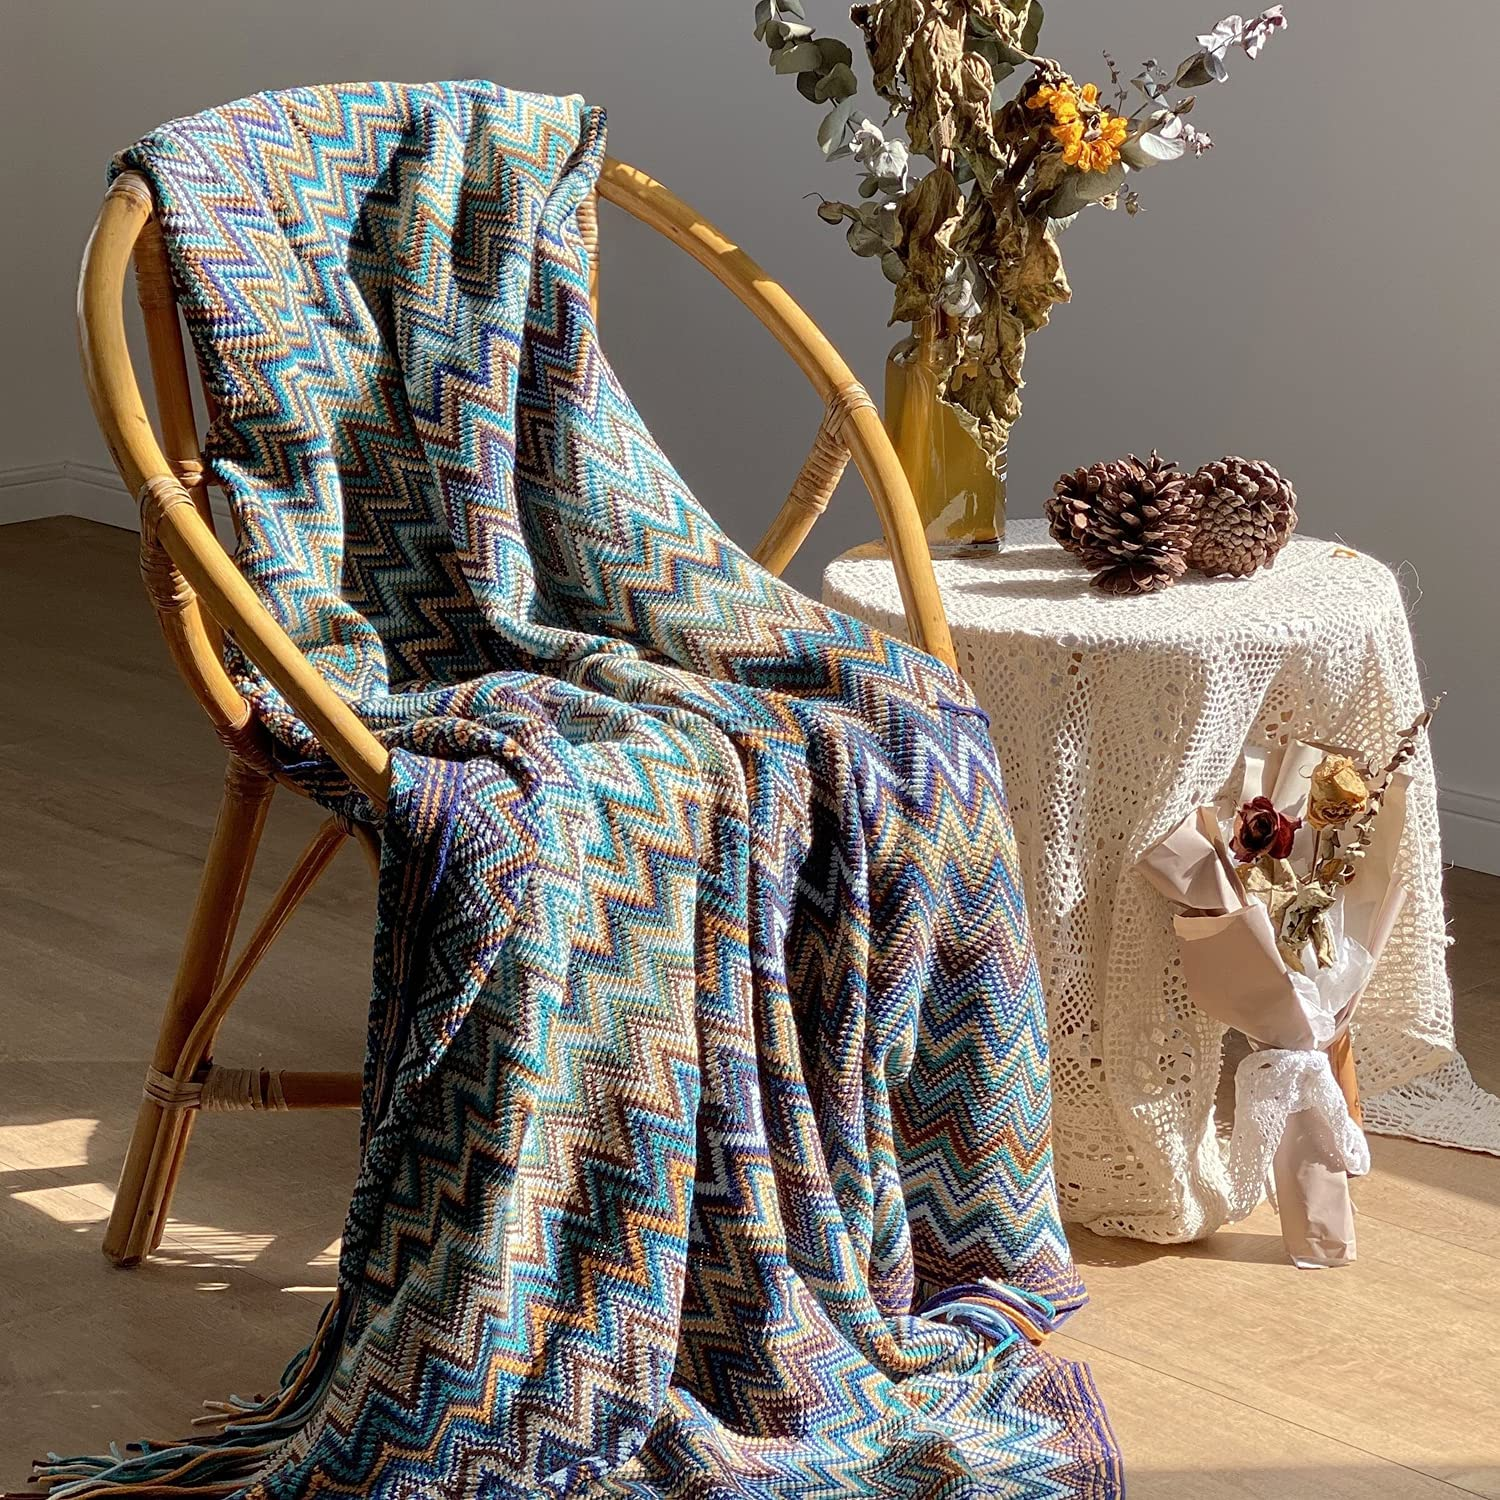 OFADD Knitted Throw Blankets Acrylic Boho Blanket with Tasselsfor Travel Couch Sofa Bed Decor, All Seasons SuitableBohemian Throw Blanket, Soft and Solid 280GSM 50